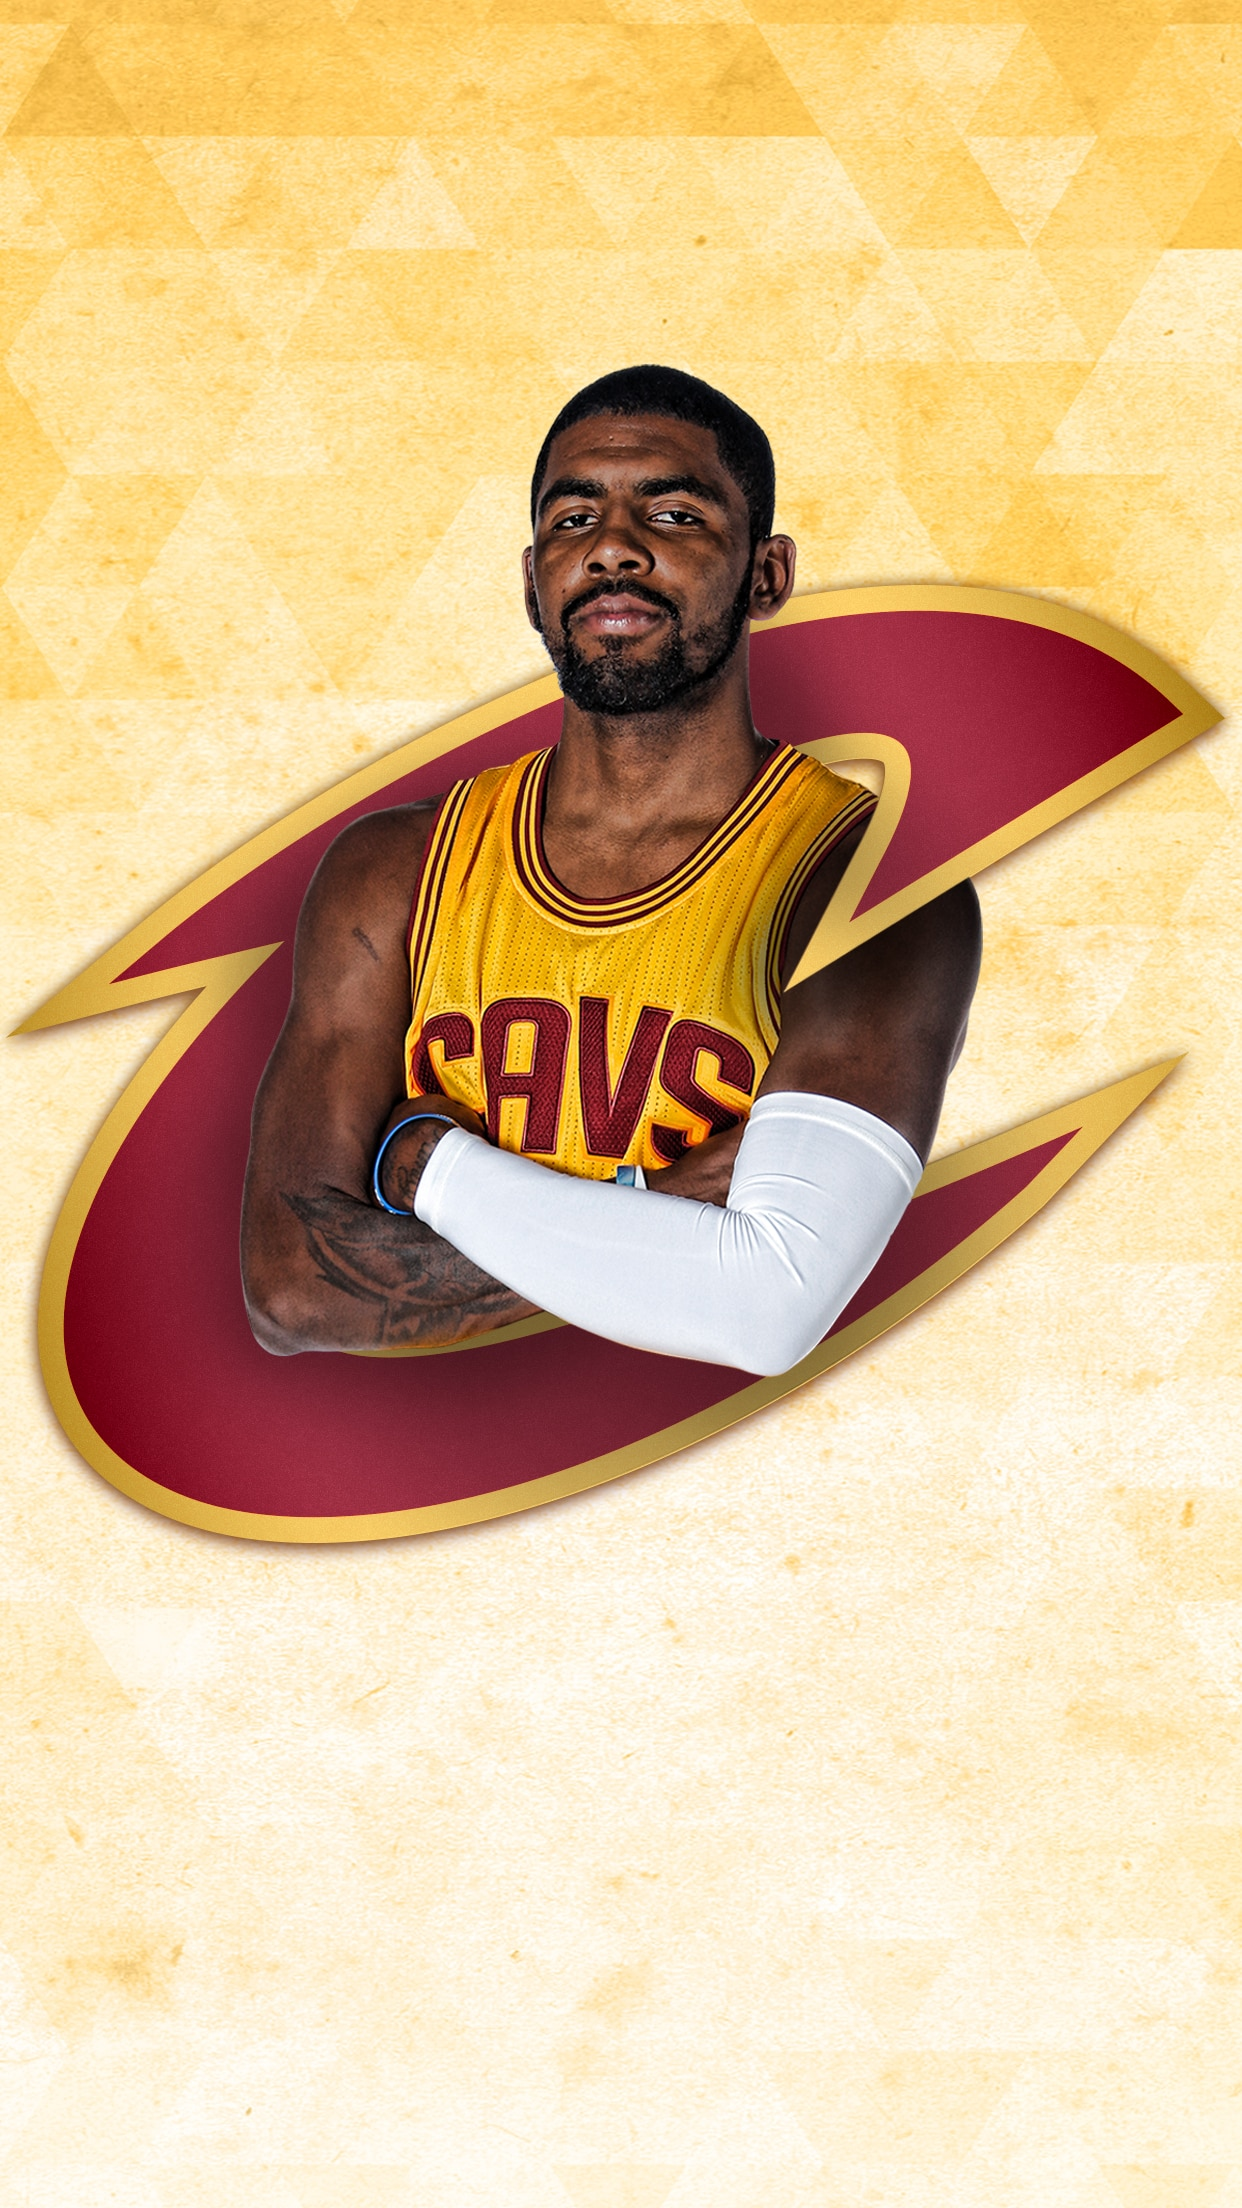 Wallpapers | Cleveland Cavaliers